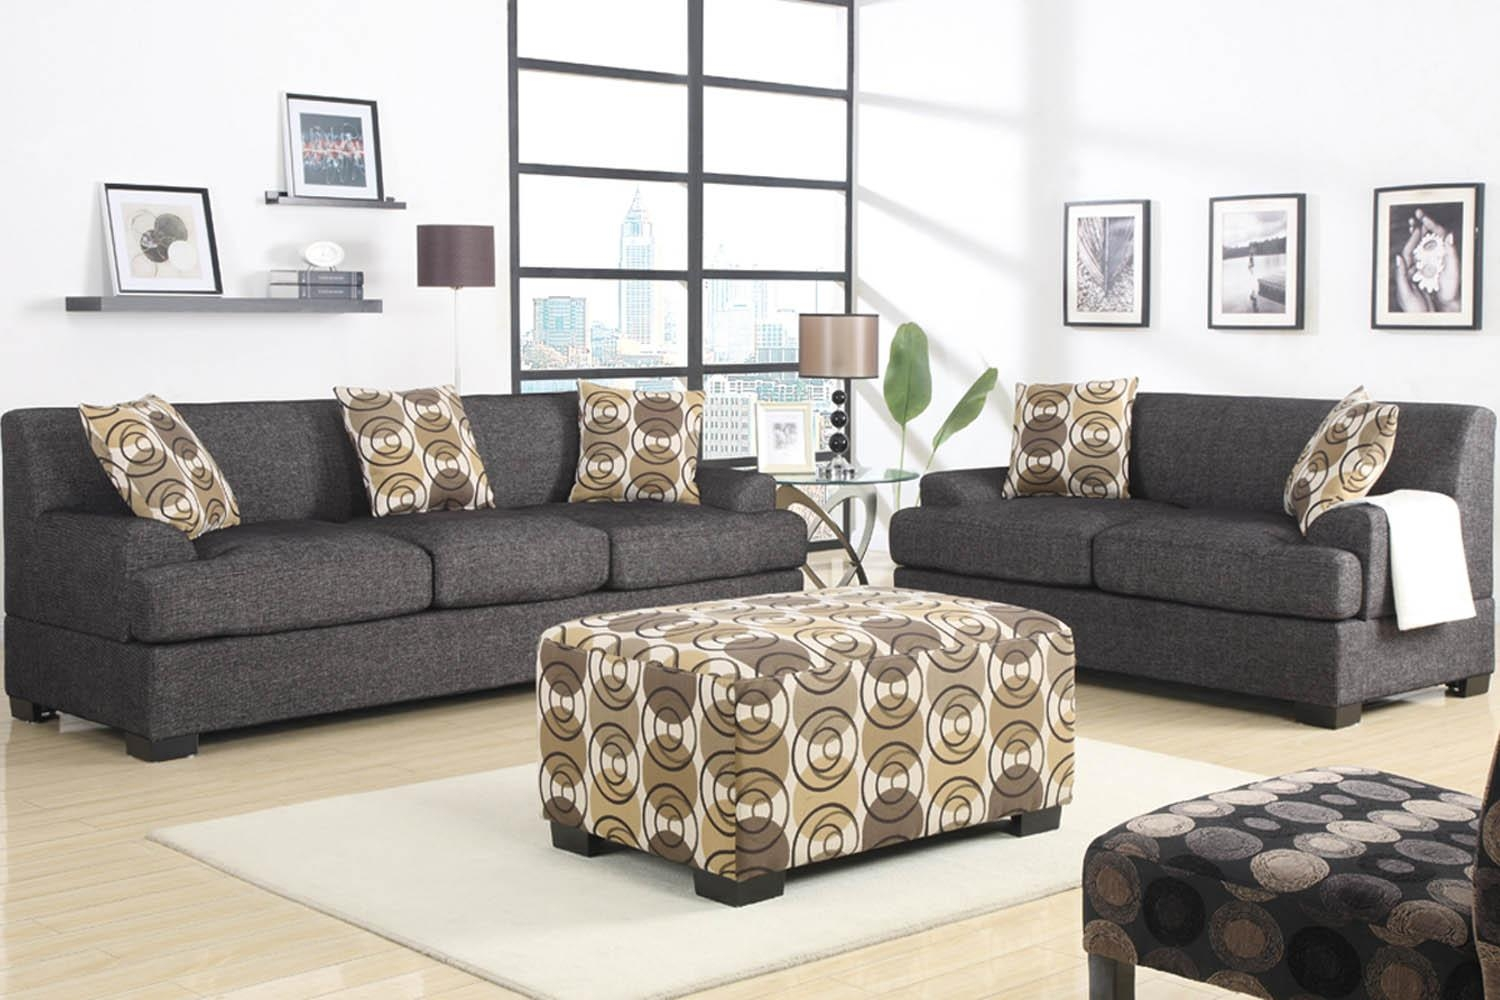 20 Best Collection Of Blue Grey Sofas